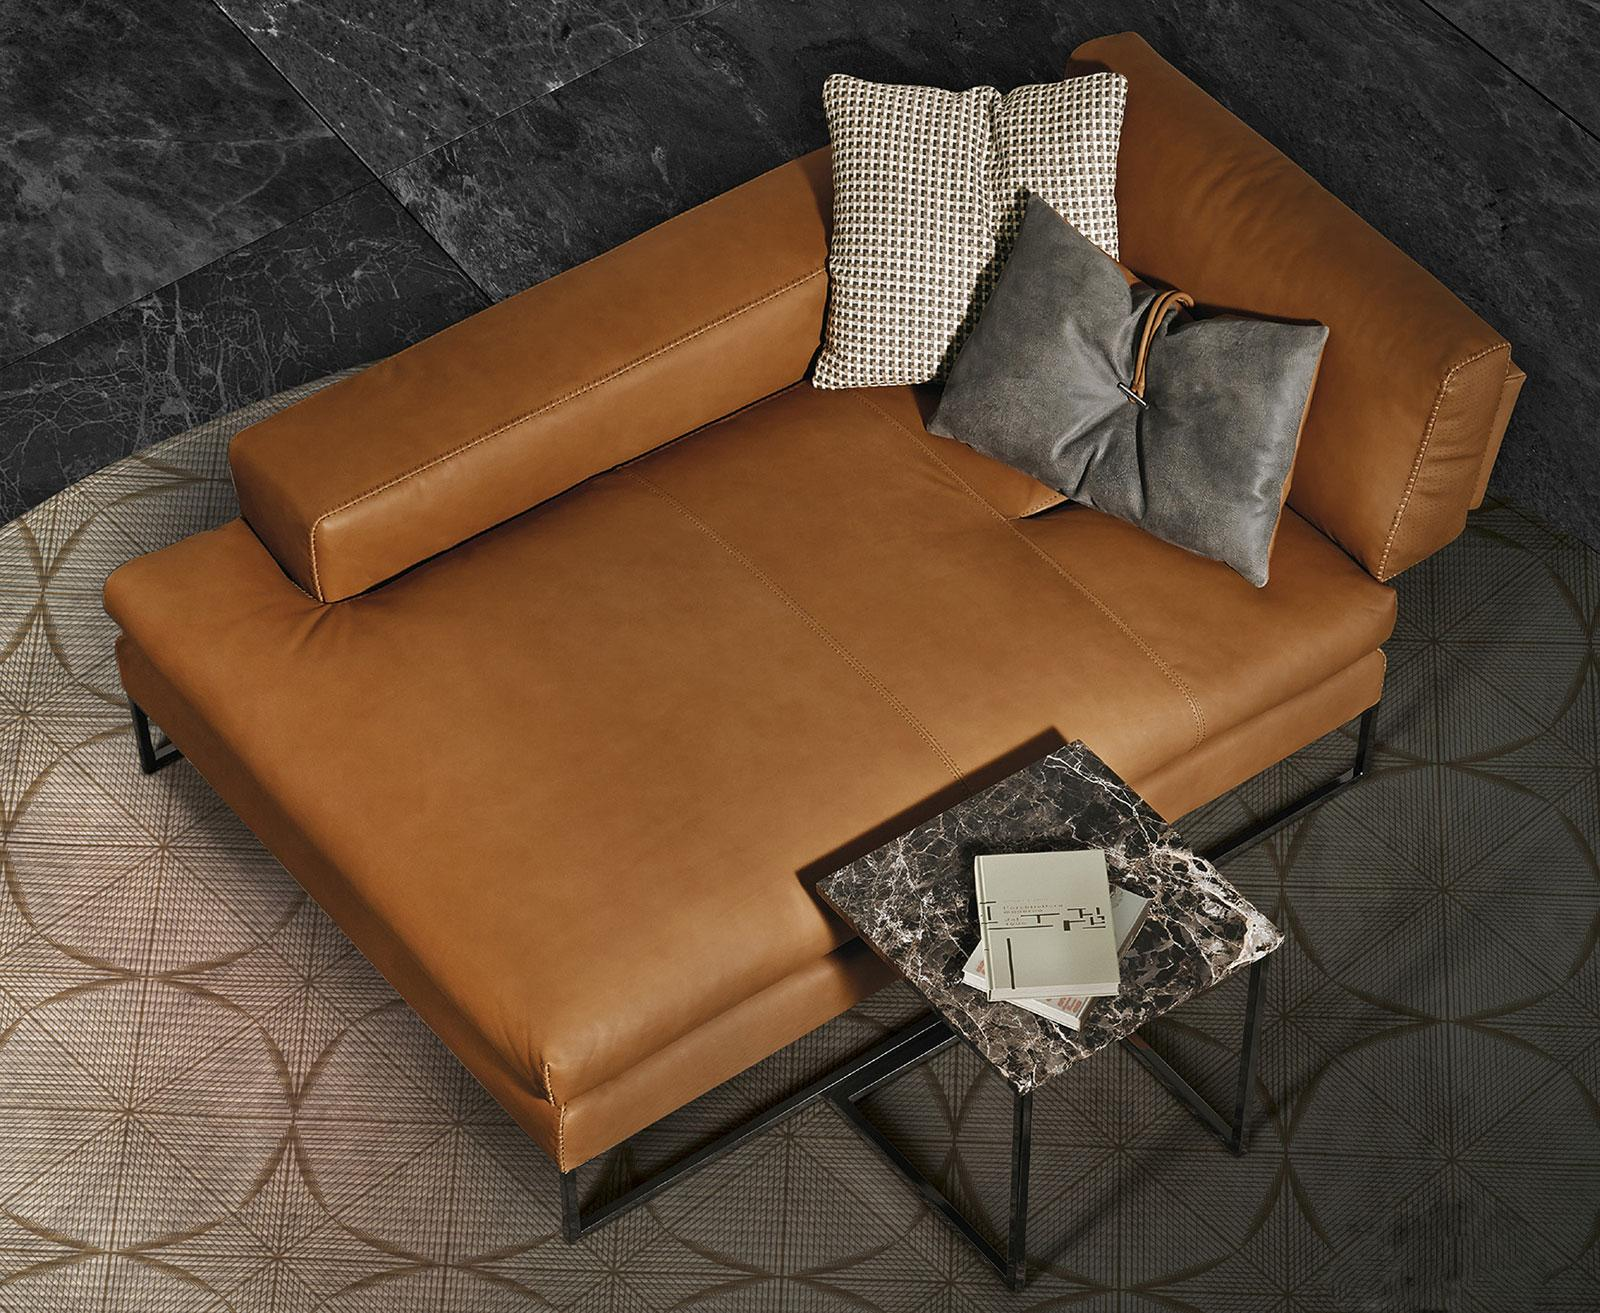 Sofa For Living Room Online Italian Luxury Sofas And Living Room Furniture Shop Online